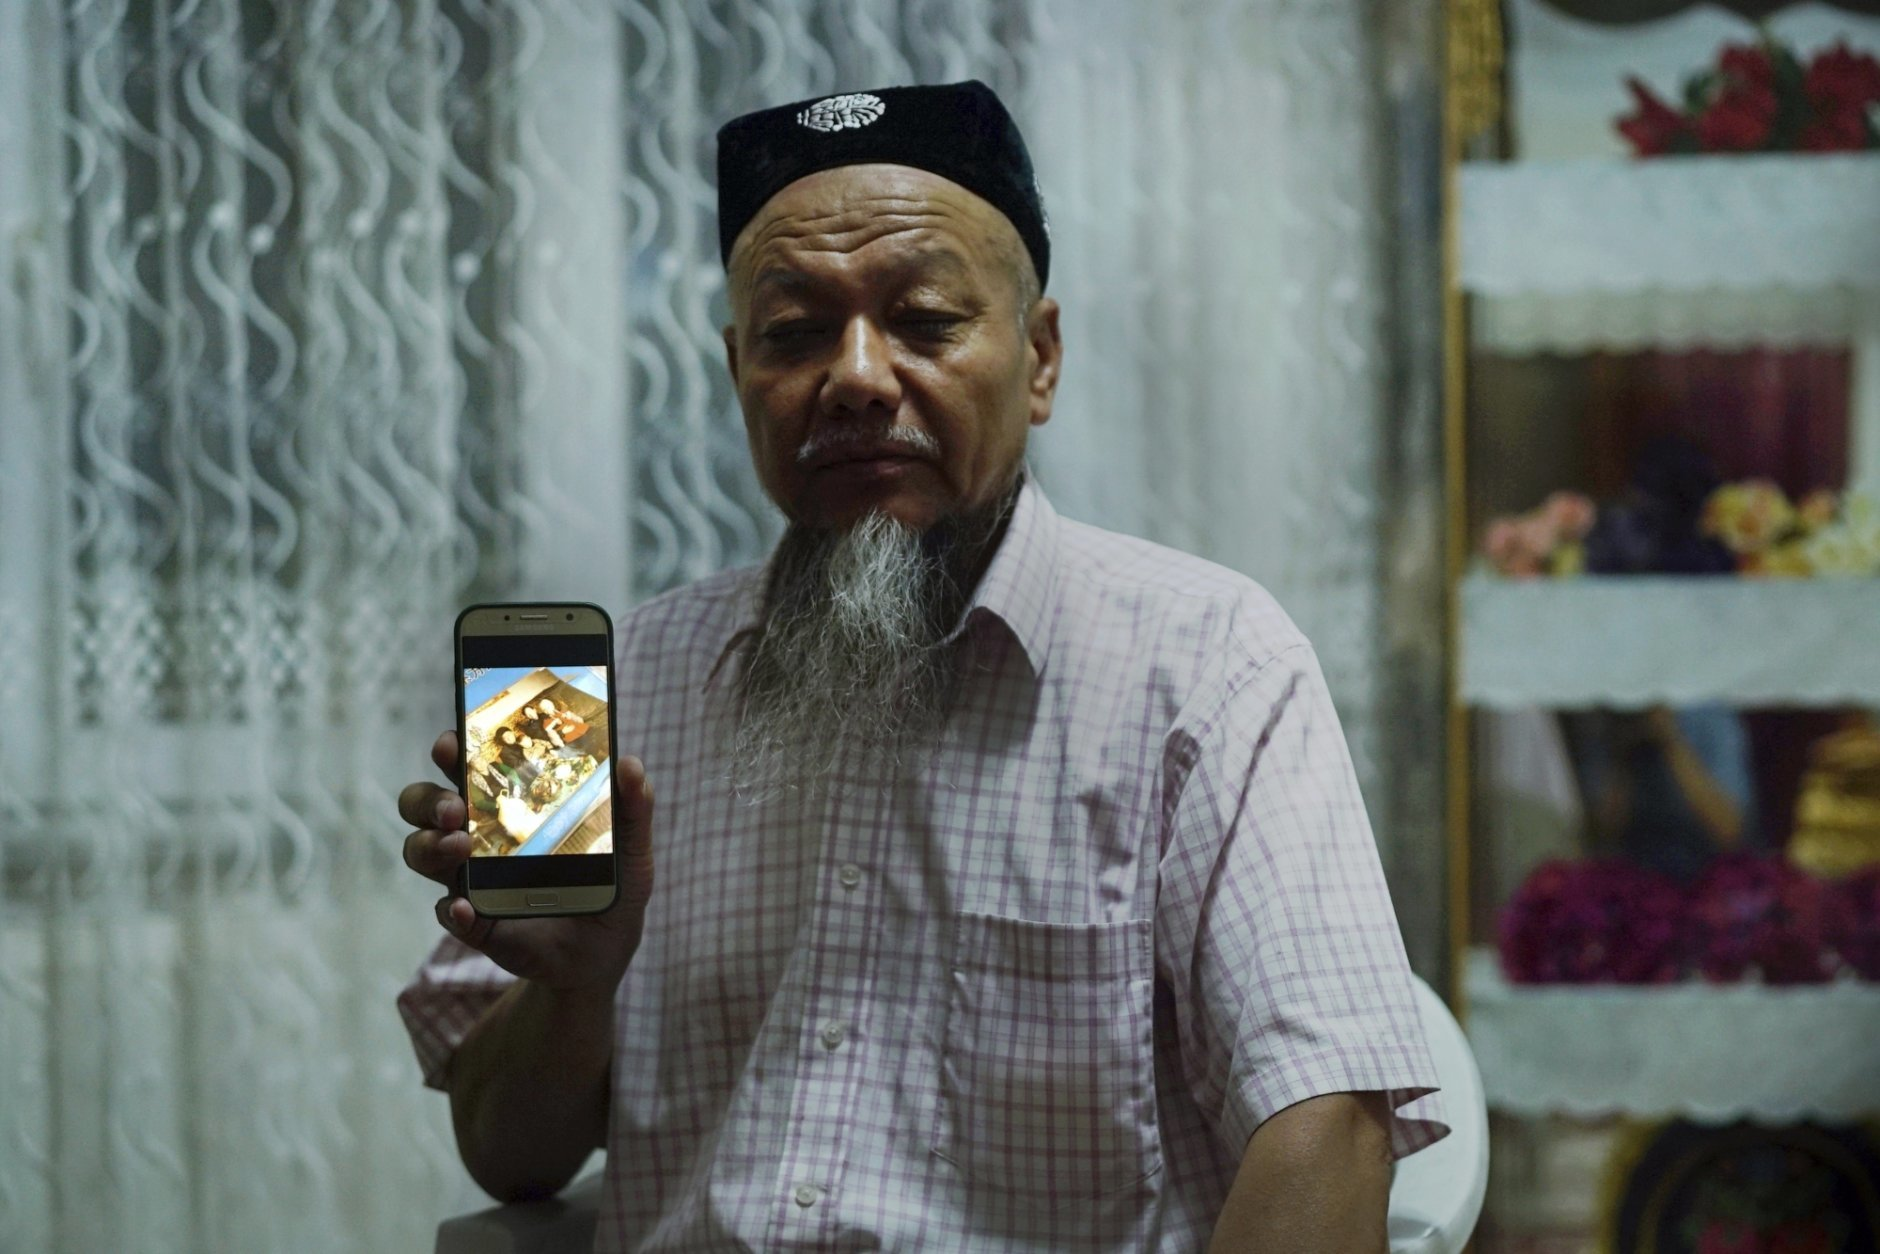 In this Aug. 22, 2018, photo, Ablikim Abliz holds up his phone displaying a photo of his uncle's family with an unknown Han Chinese man in Istanbul, Turkey. Abliz heard the Han Chinese man was part of a government homestay program meant to monitor his relatives, part of a broader crackdown on religious expression in China's far western region of Xinjiang. He later heard that his uncle's front door was boarded up and sealed with police tape, and has not been able to contact them since. (AP Photo/Dake Kang)